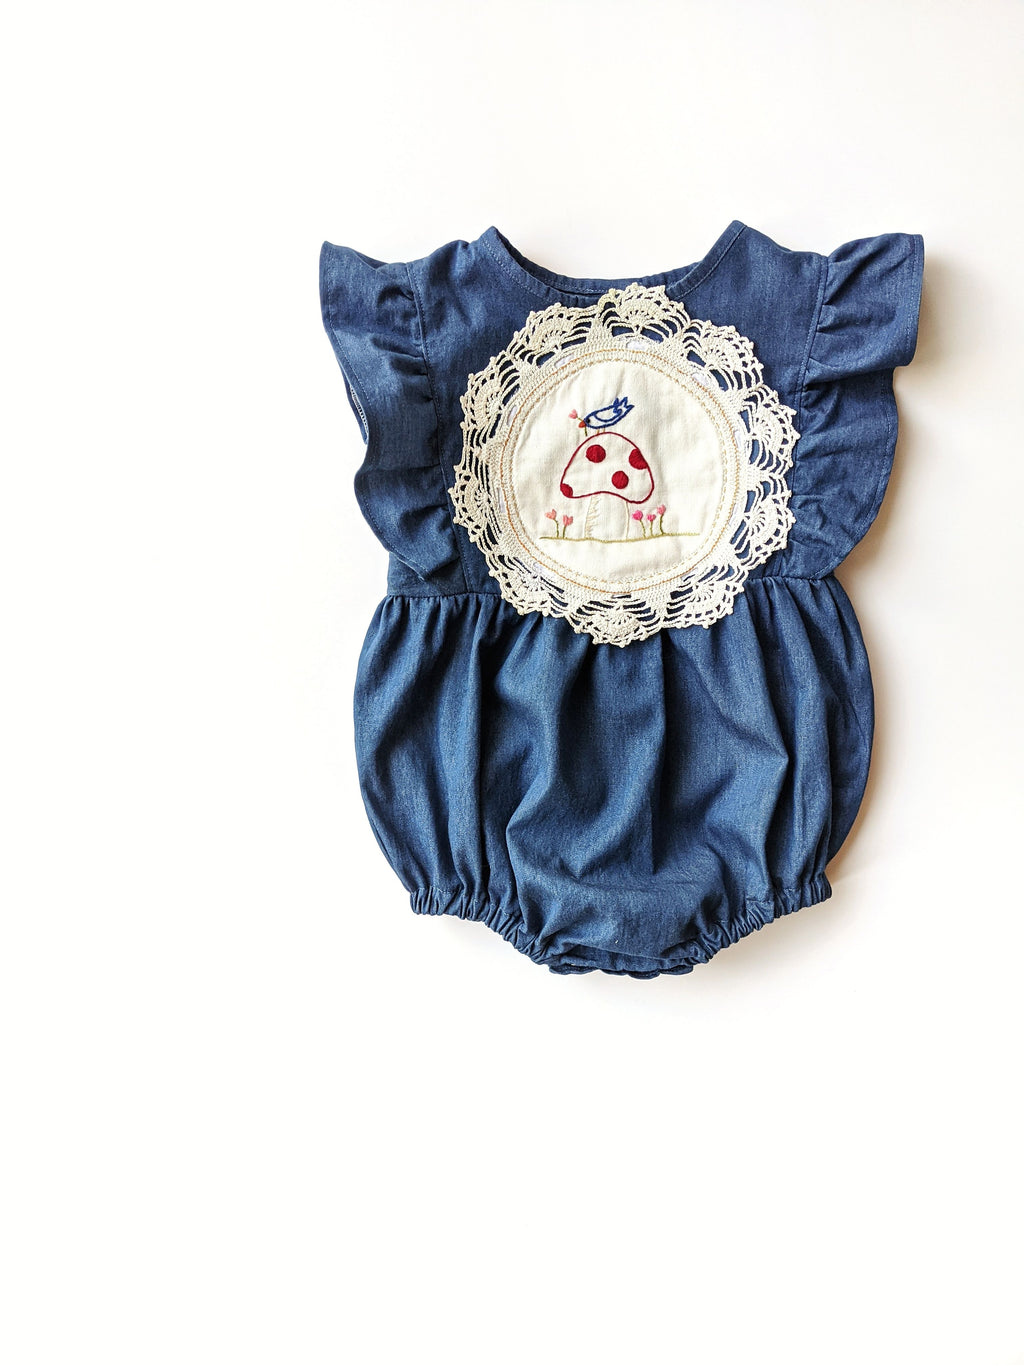 Embroidered Doily Denim Romper- Size 2T